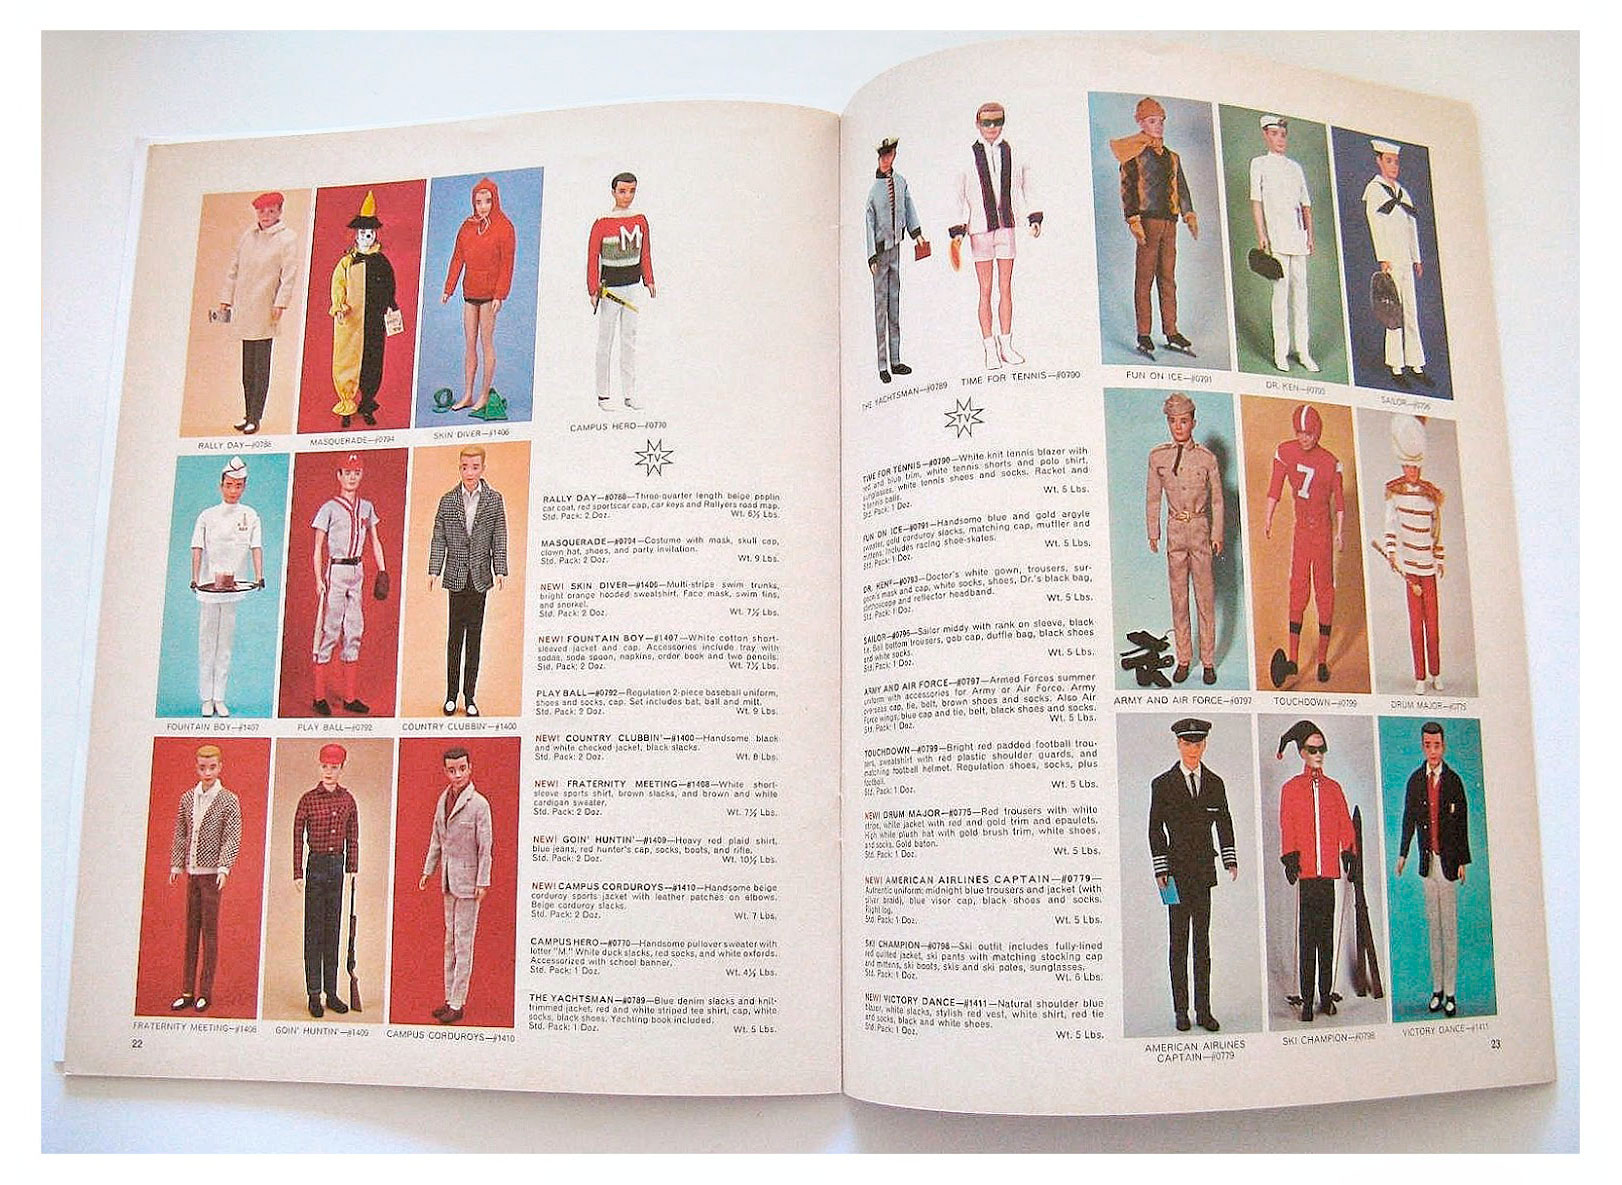 From Barbie For Fall '64 catalogue